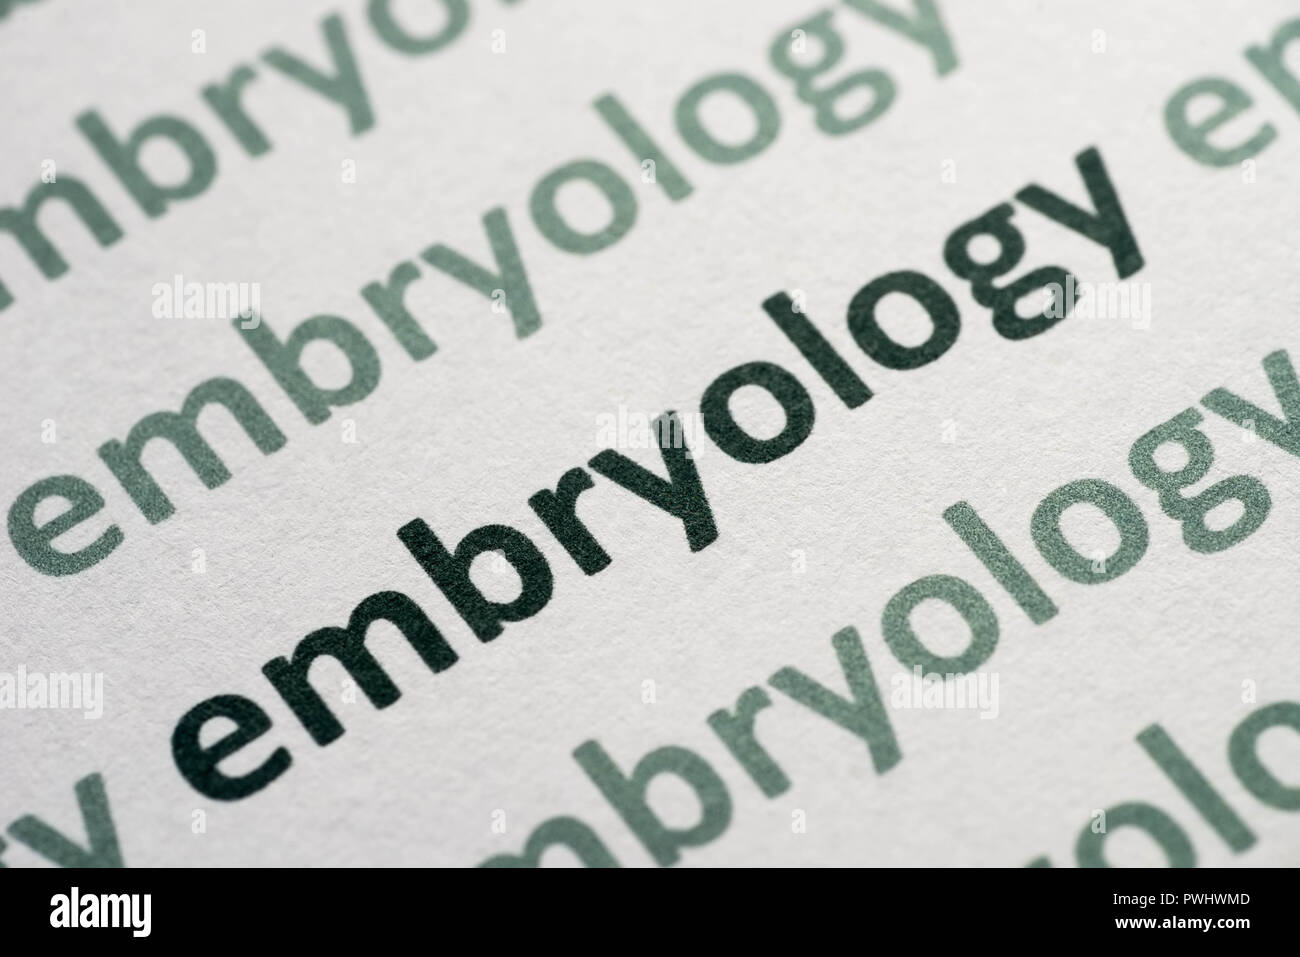 word embryology printed on whte paper macro - Stock Image